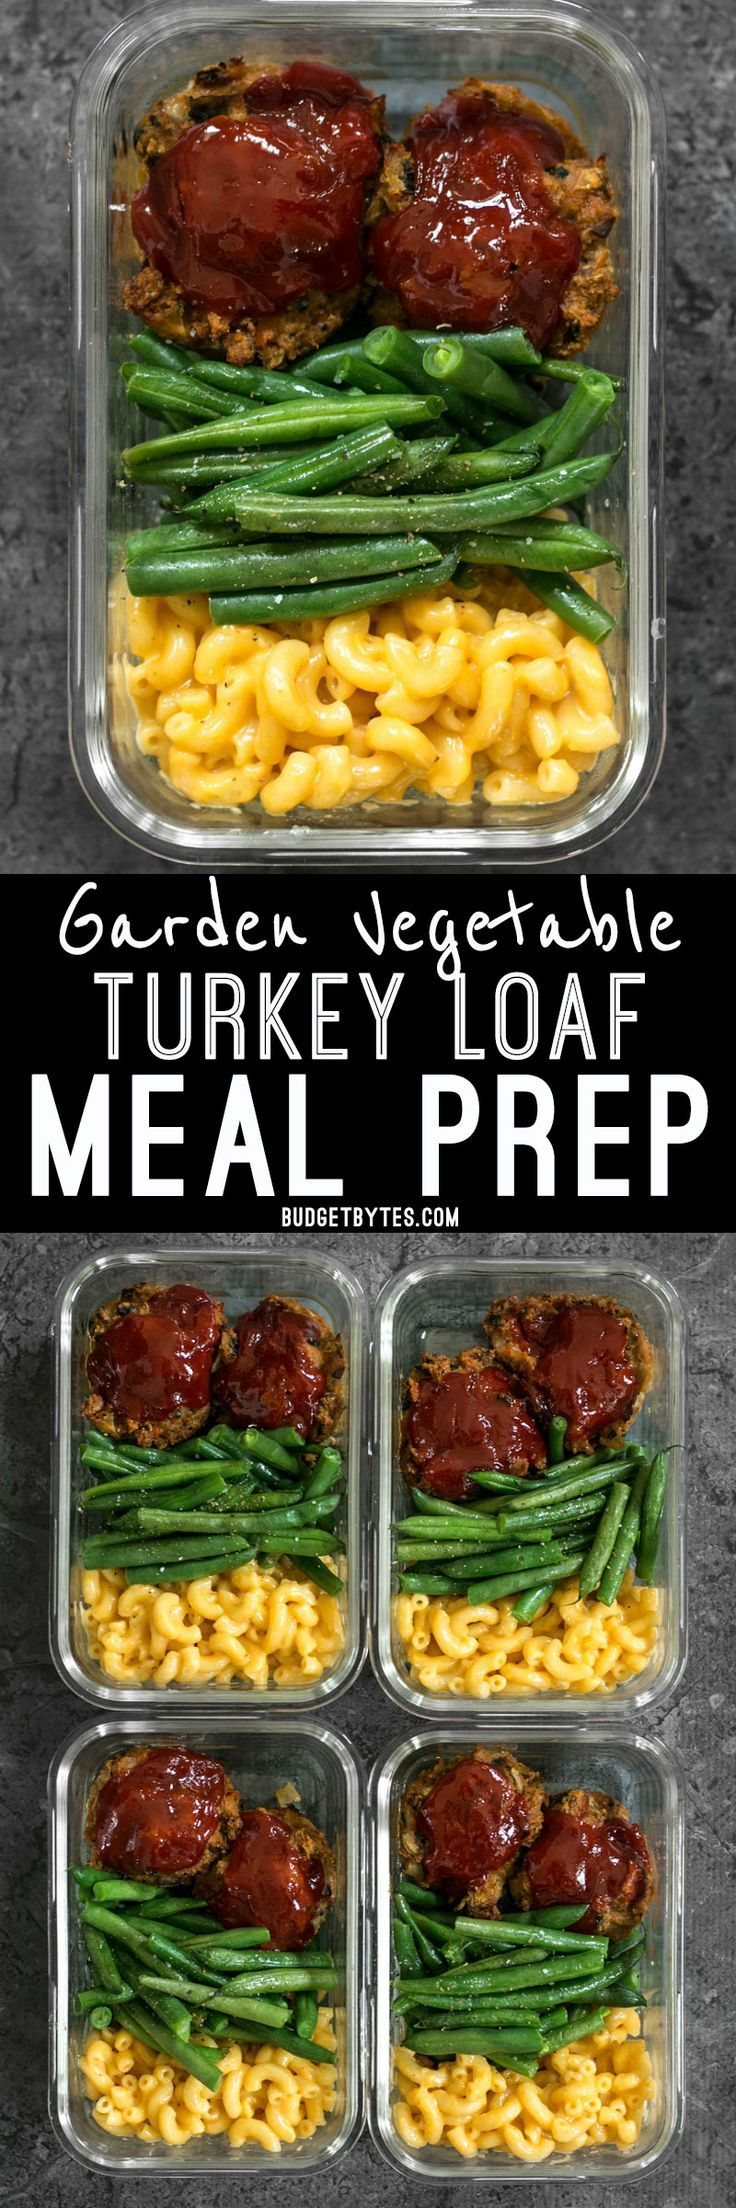 It's comfort food in a box! You'll look forward to eating this veggie-packed Garden Vegetable Turkey Loaf Meal Prep for lunch every day. @budgetbytes